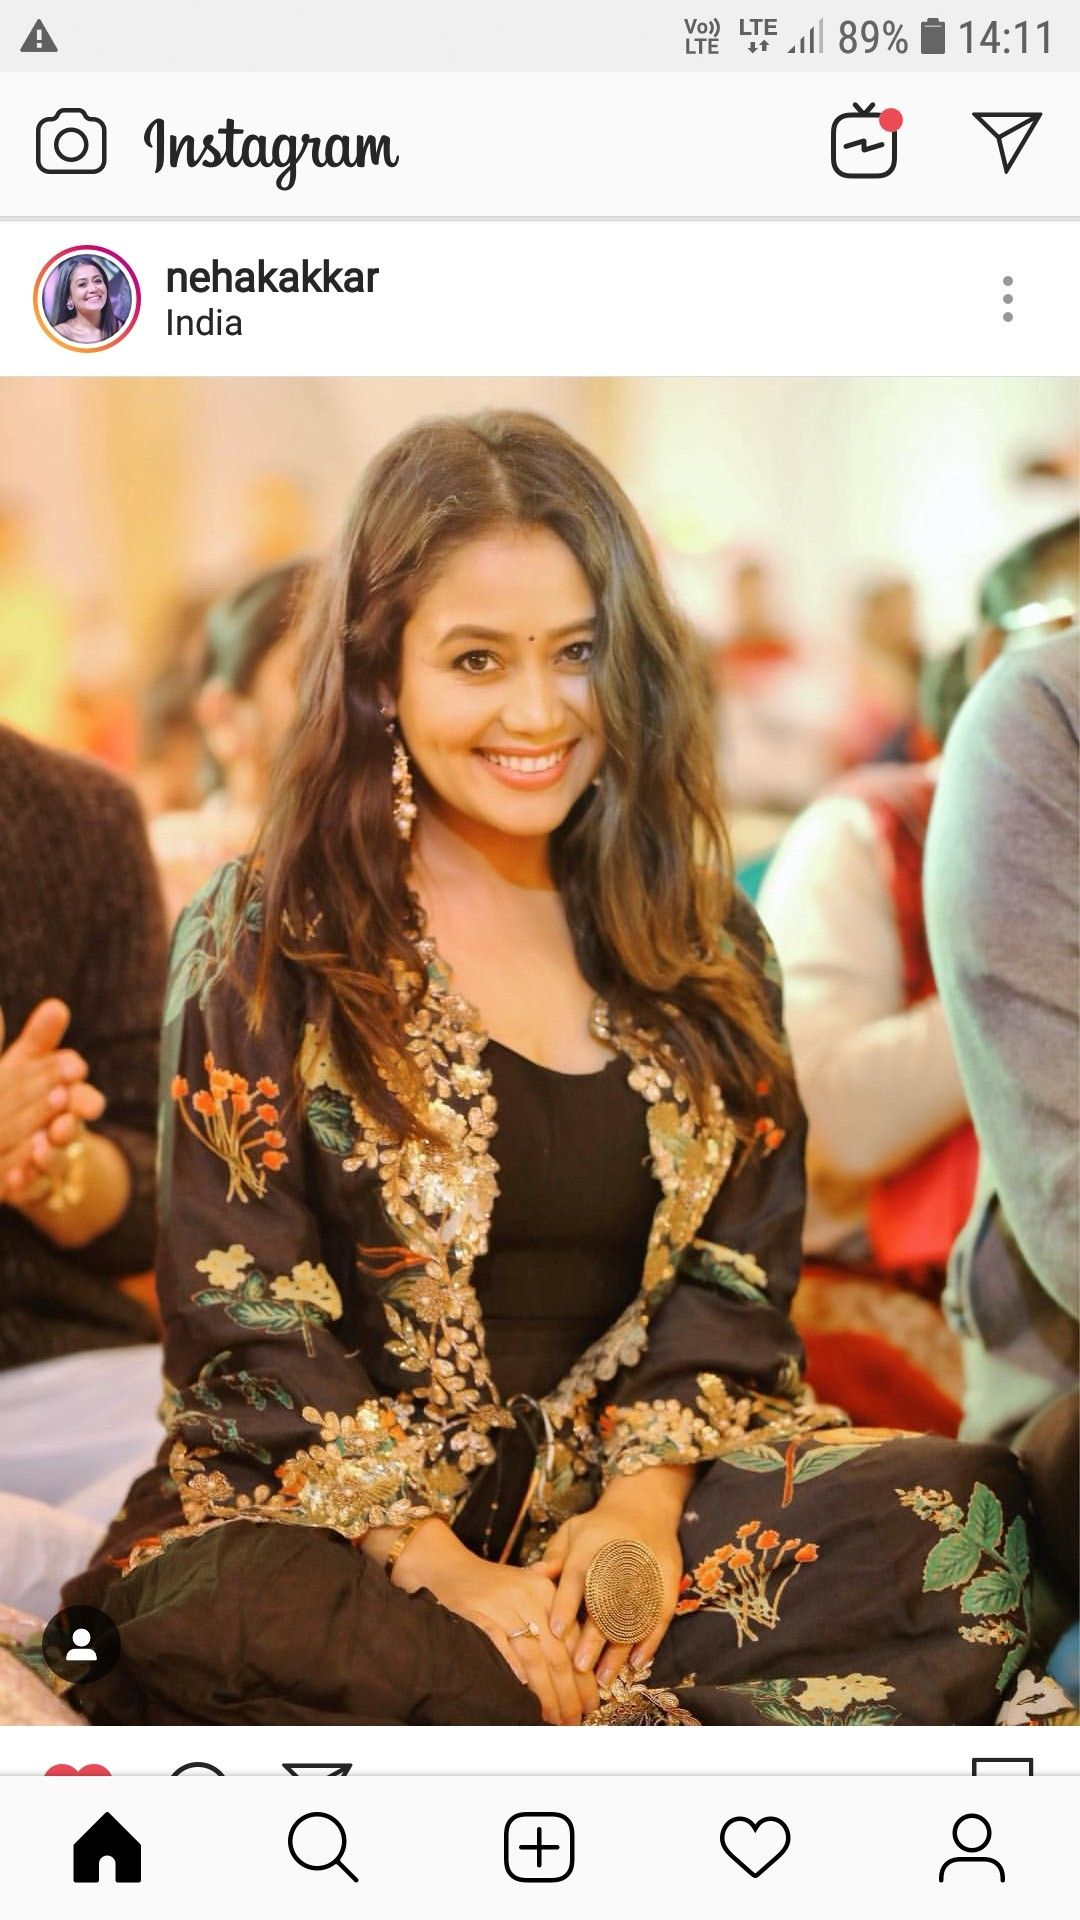 Pin by Subhadra on neha kakkar (With images) Neha kakkar